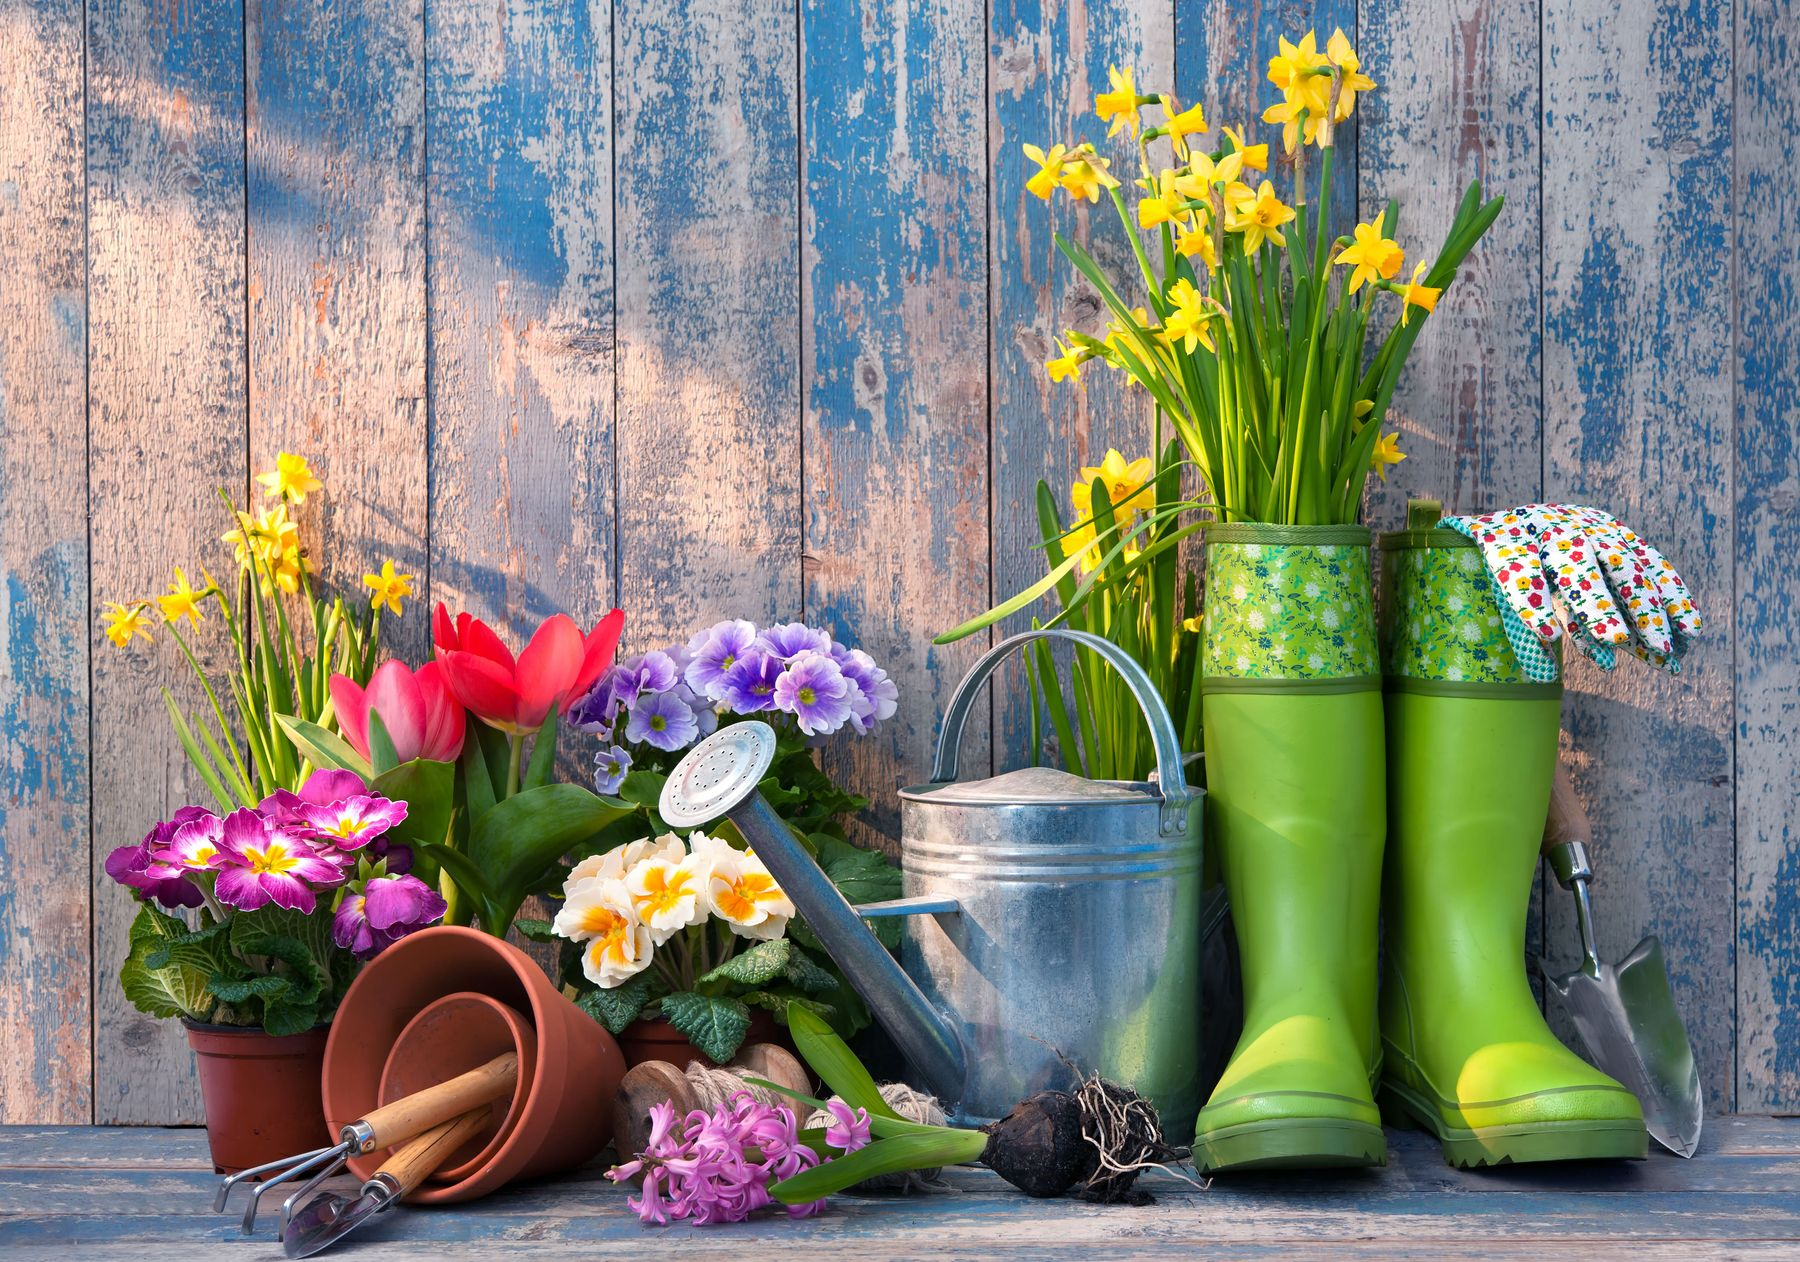 Tools for your gardening